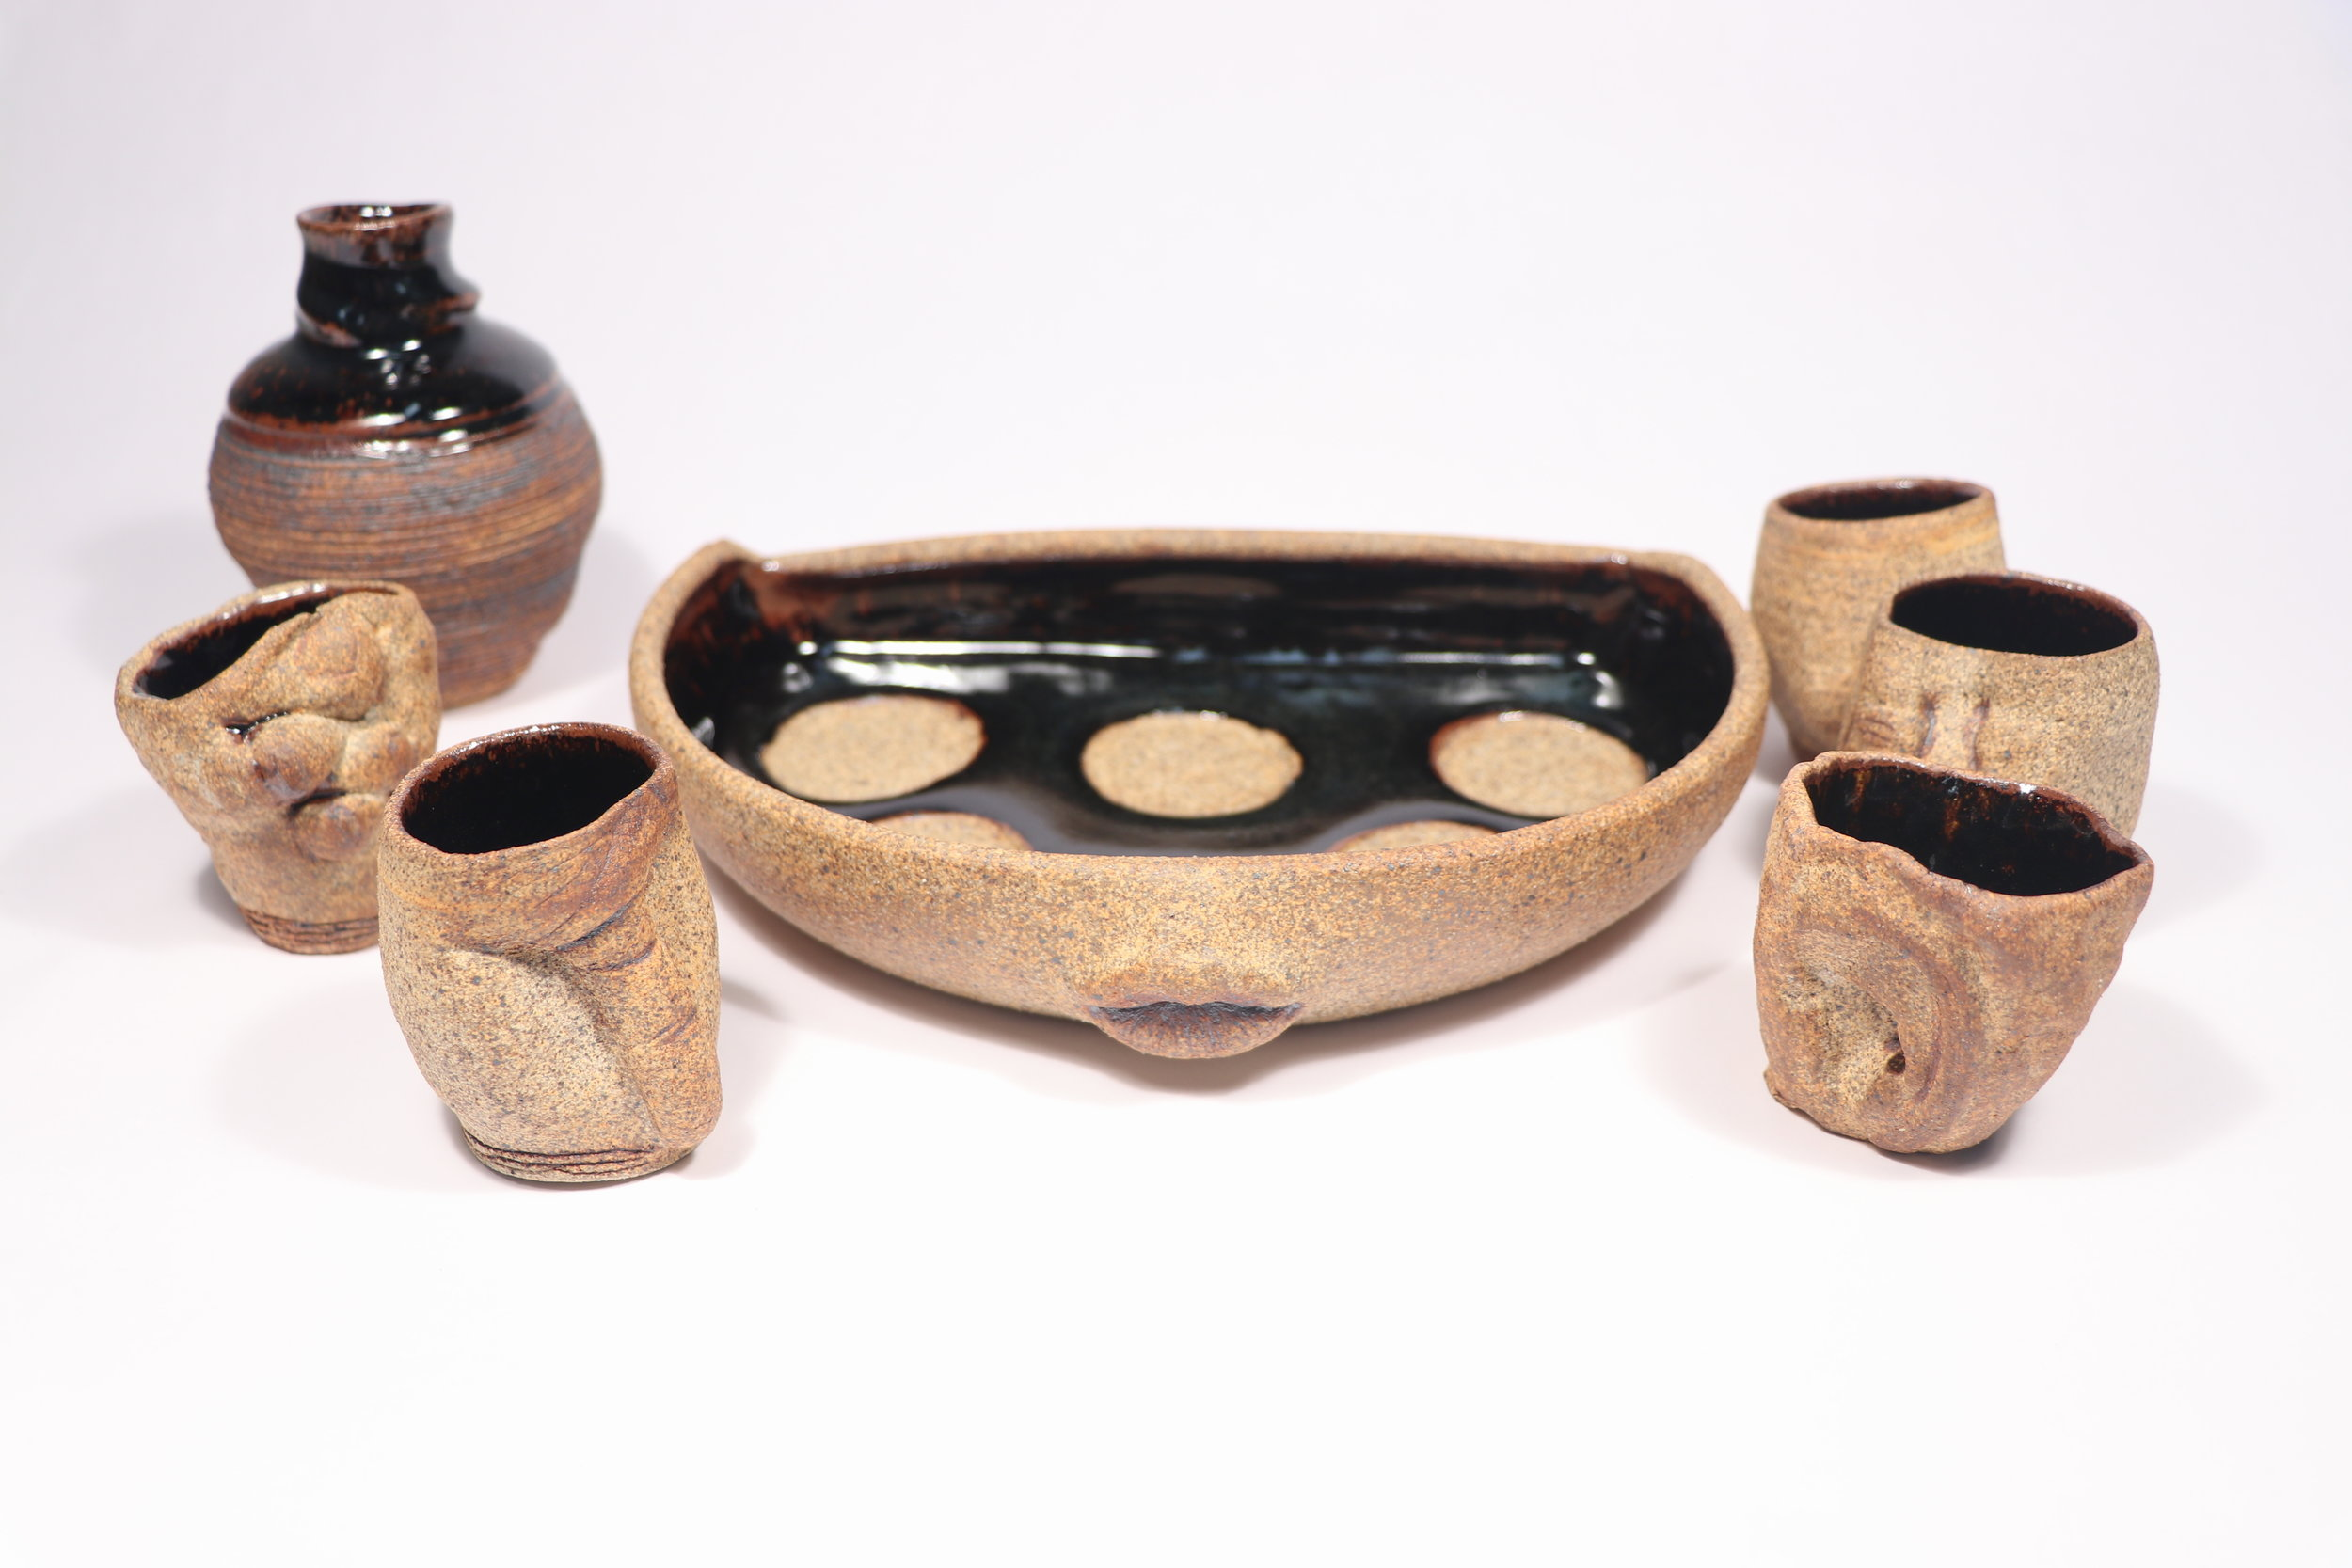 Sake set: The Consecration, Ceramics, Cone 10 Reduction, Tray: 9.5 x 7 x 1.75in, 2017. Cups: 7.5 (belly) x 2.5in Bottle: 11 (belly) x 5in 2017.